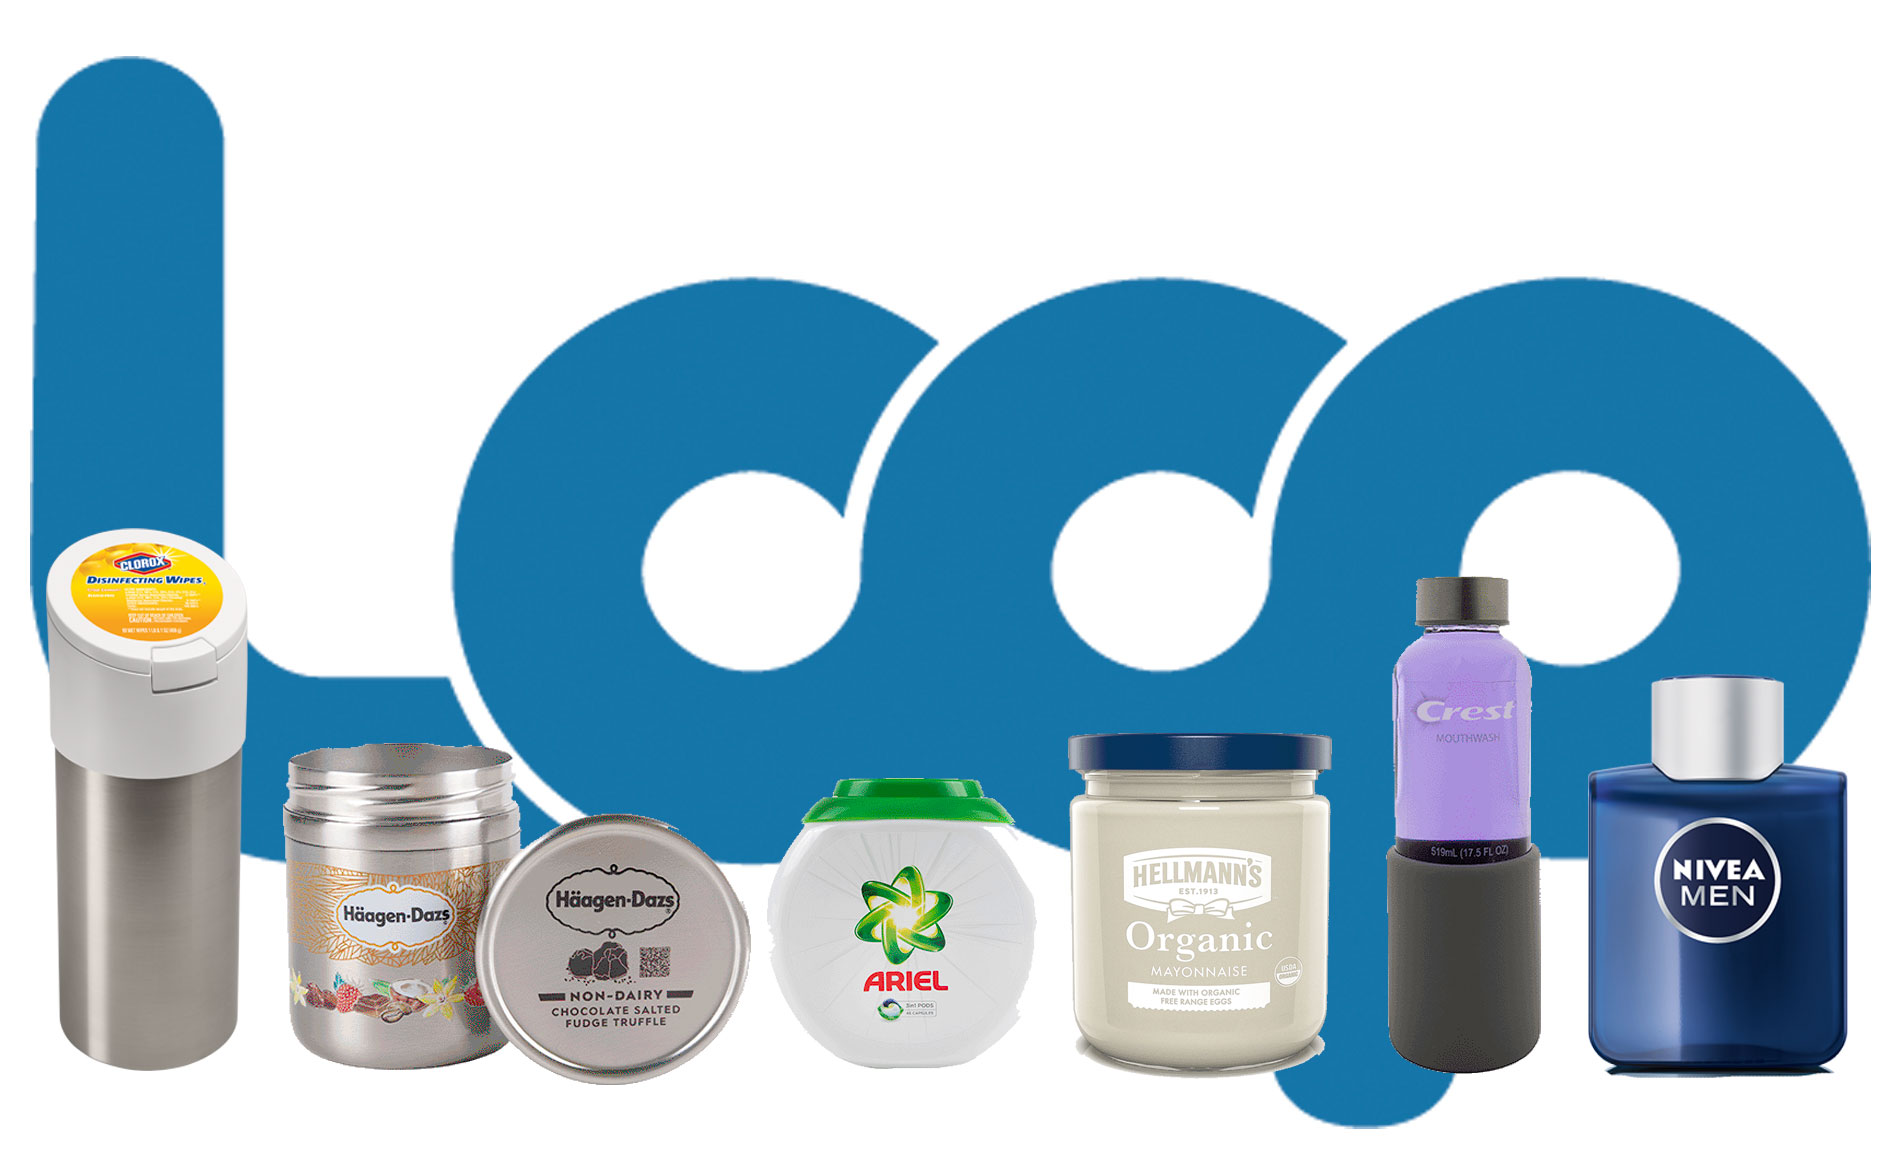 Loop's launch brings reusable packaging to the world's biggest brands |  Greenbiz